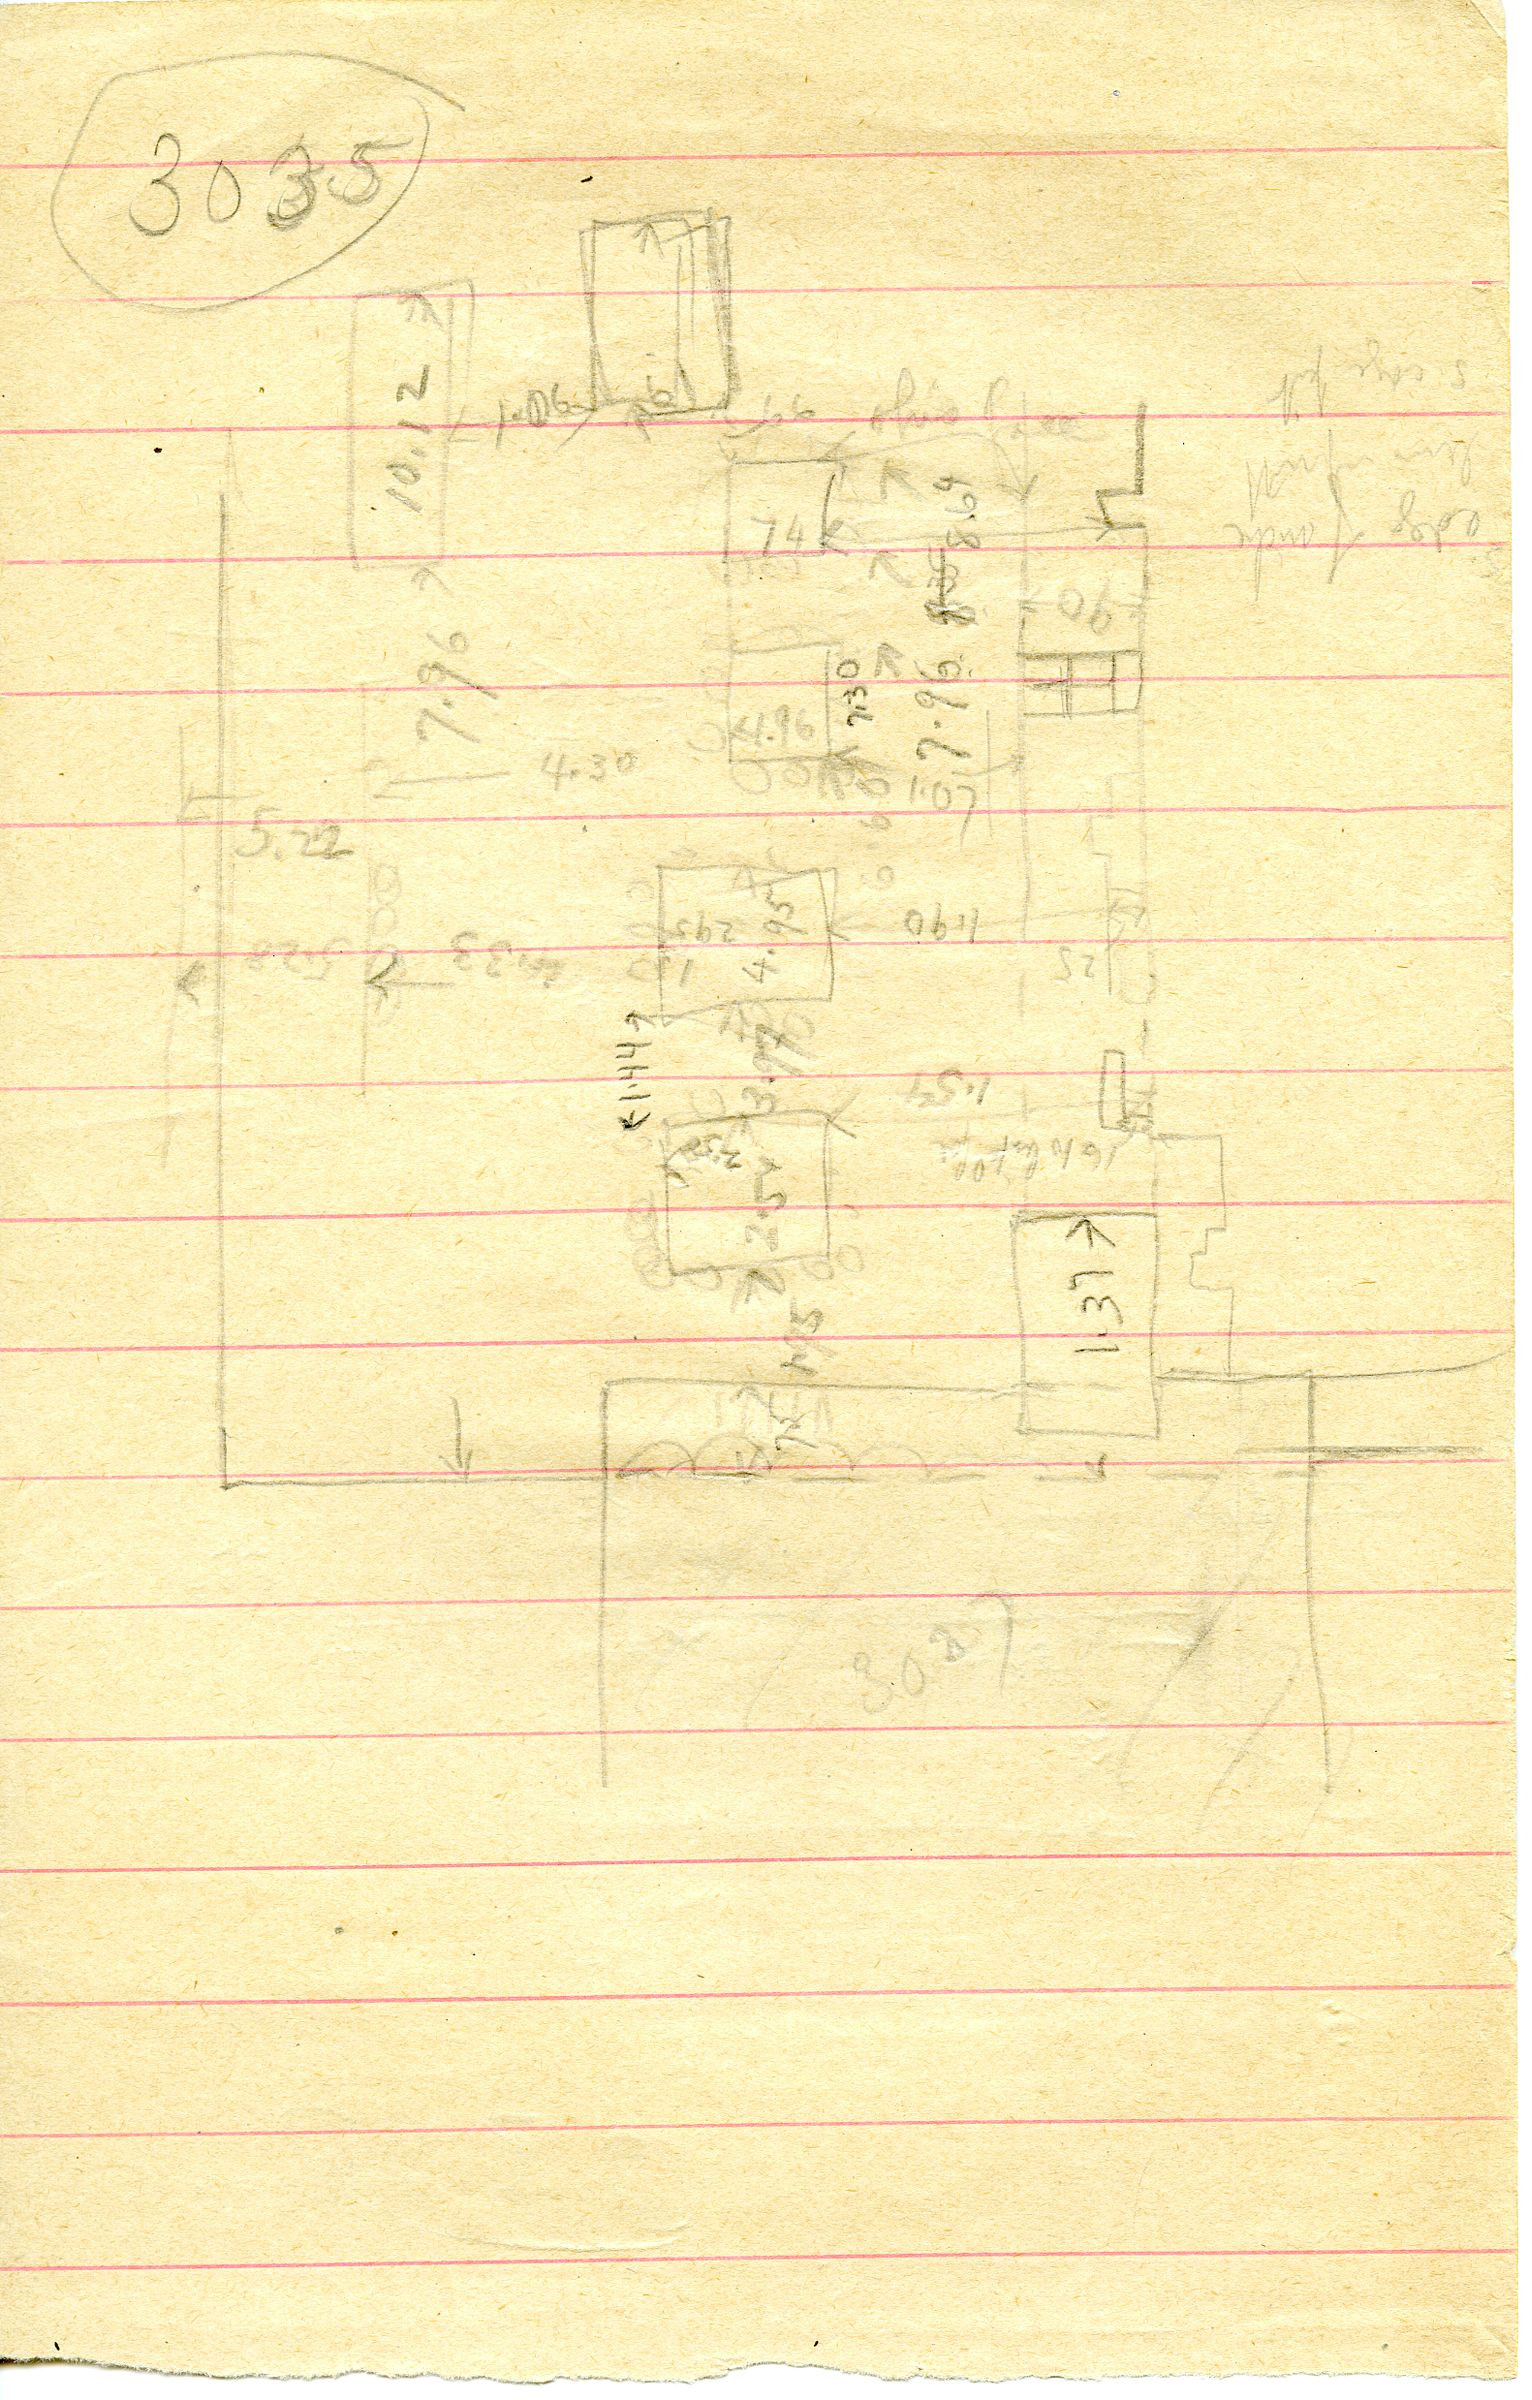 Maps and plans: G 3035, Sketch plan